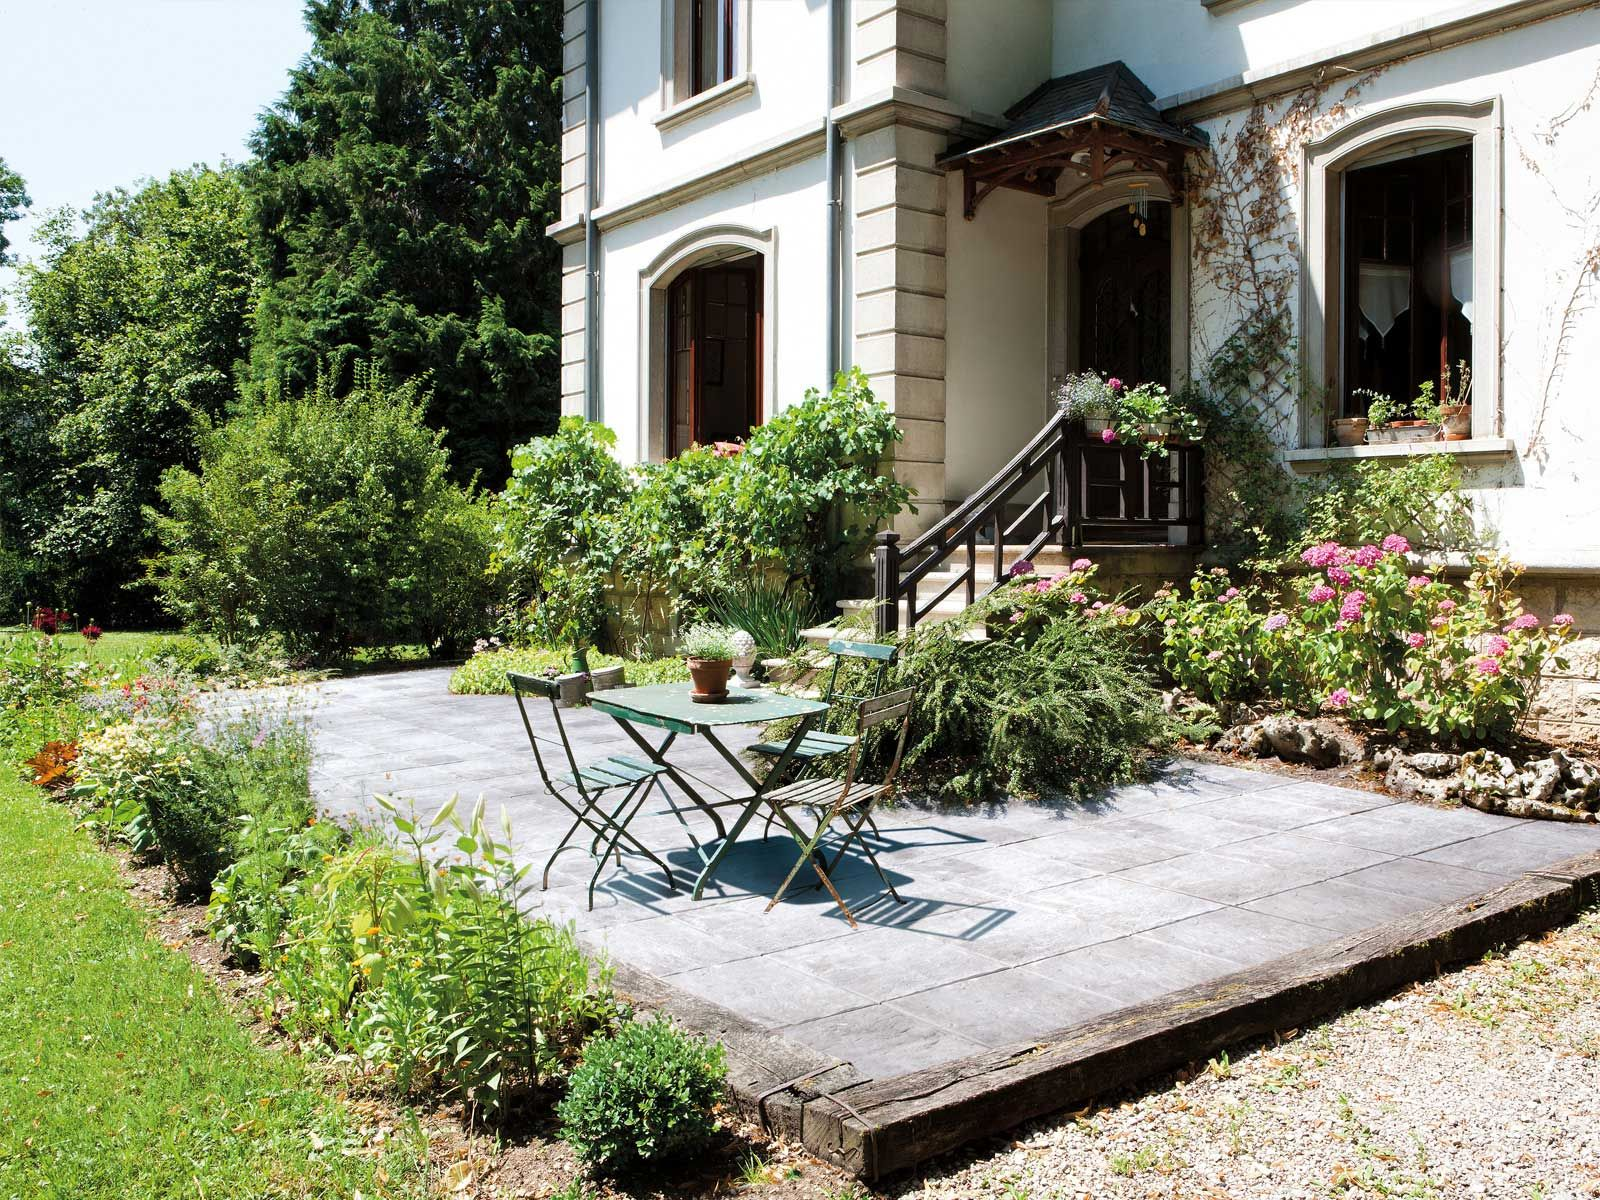 Dalle Exterieur Marlux Marlux Dalle Nuagee Ambiance Cottage Paving Slabs Garden